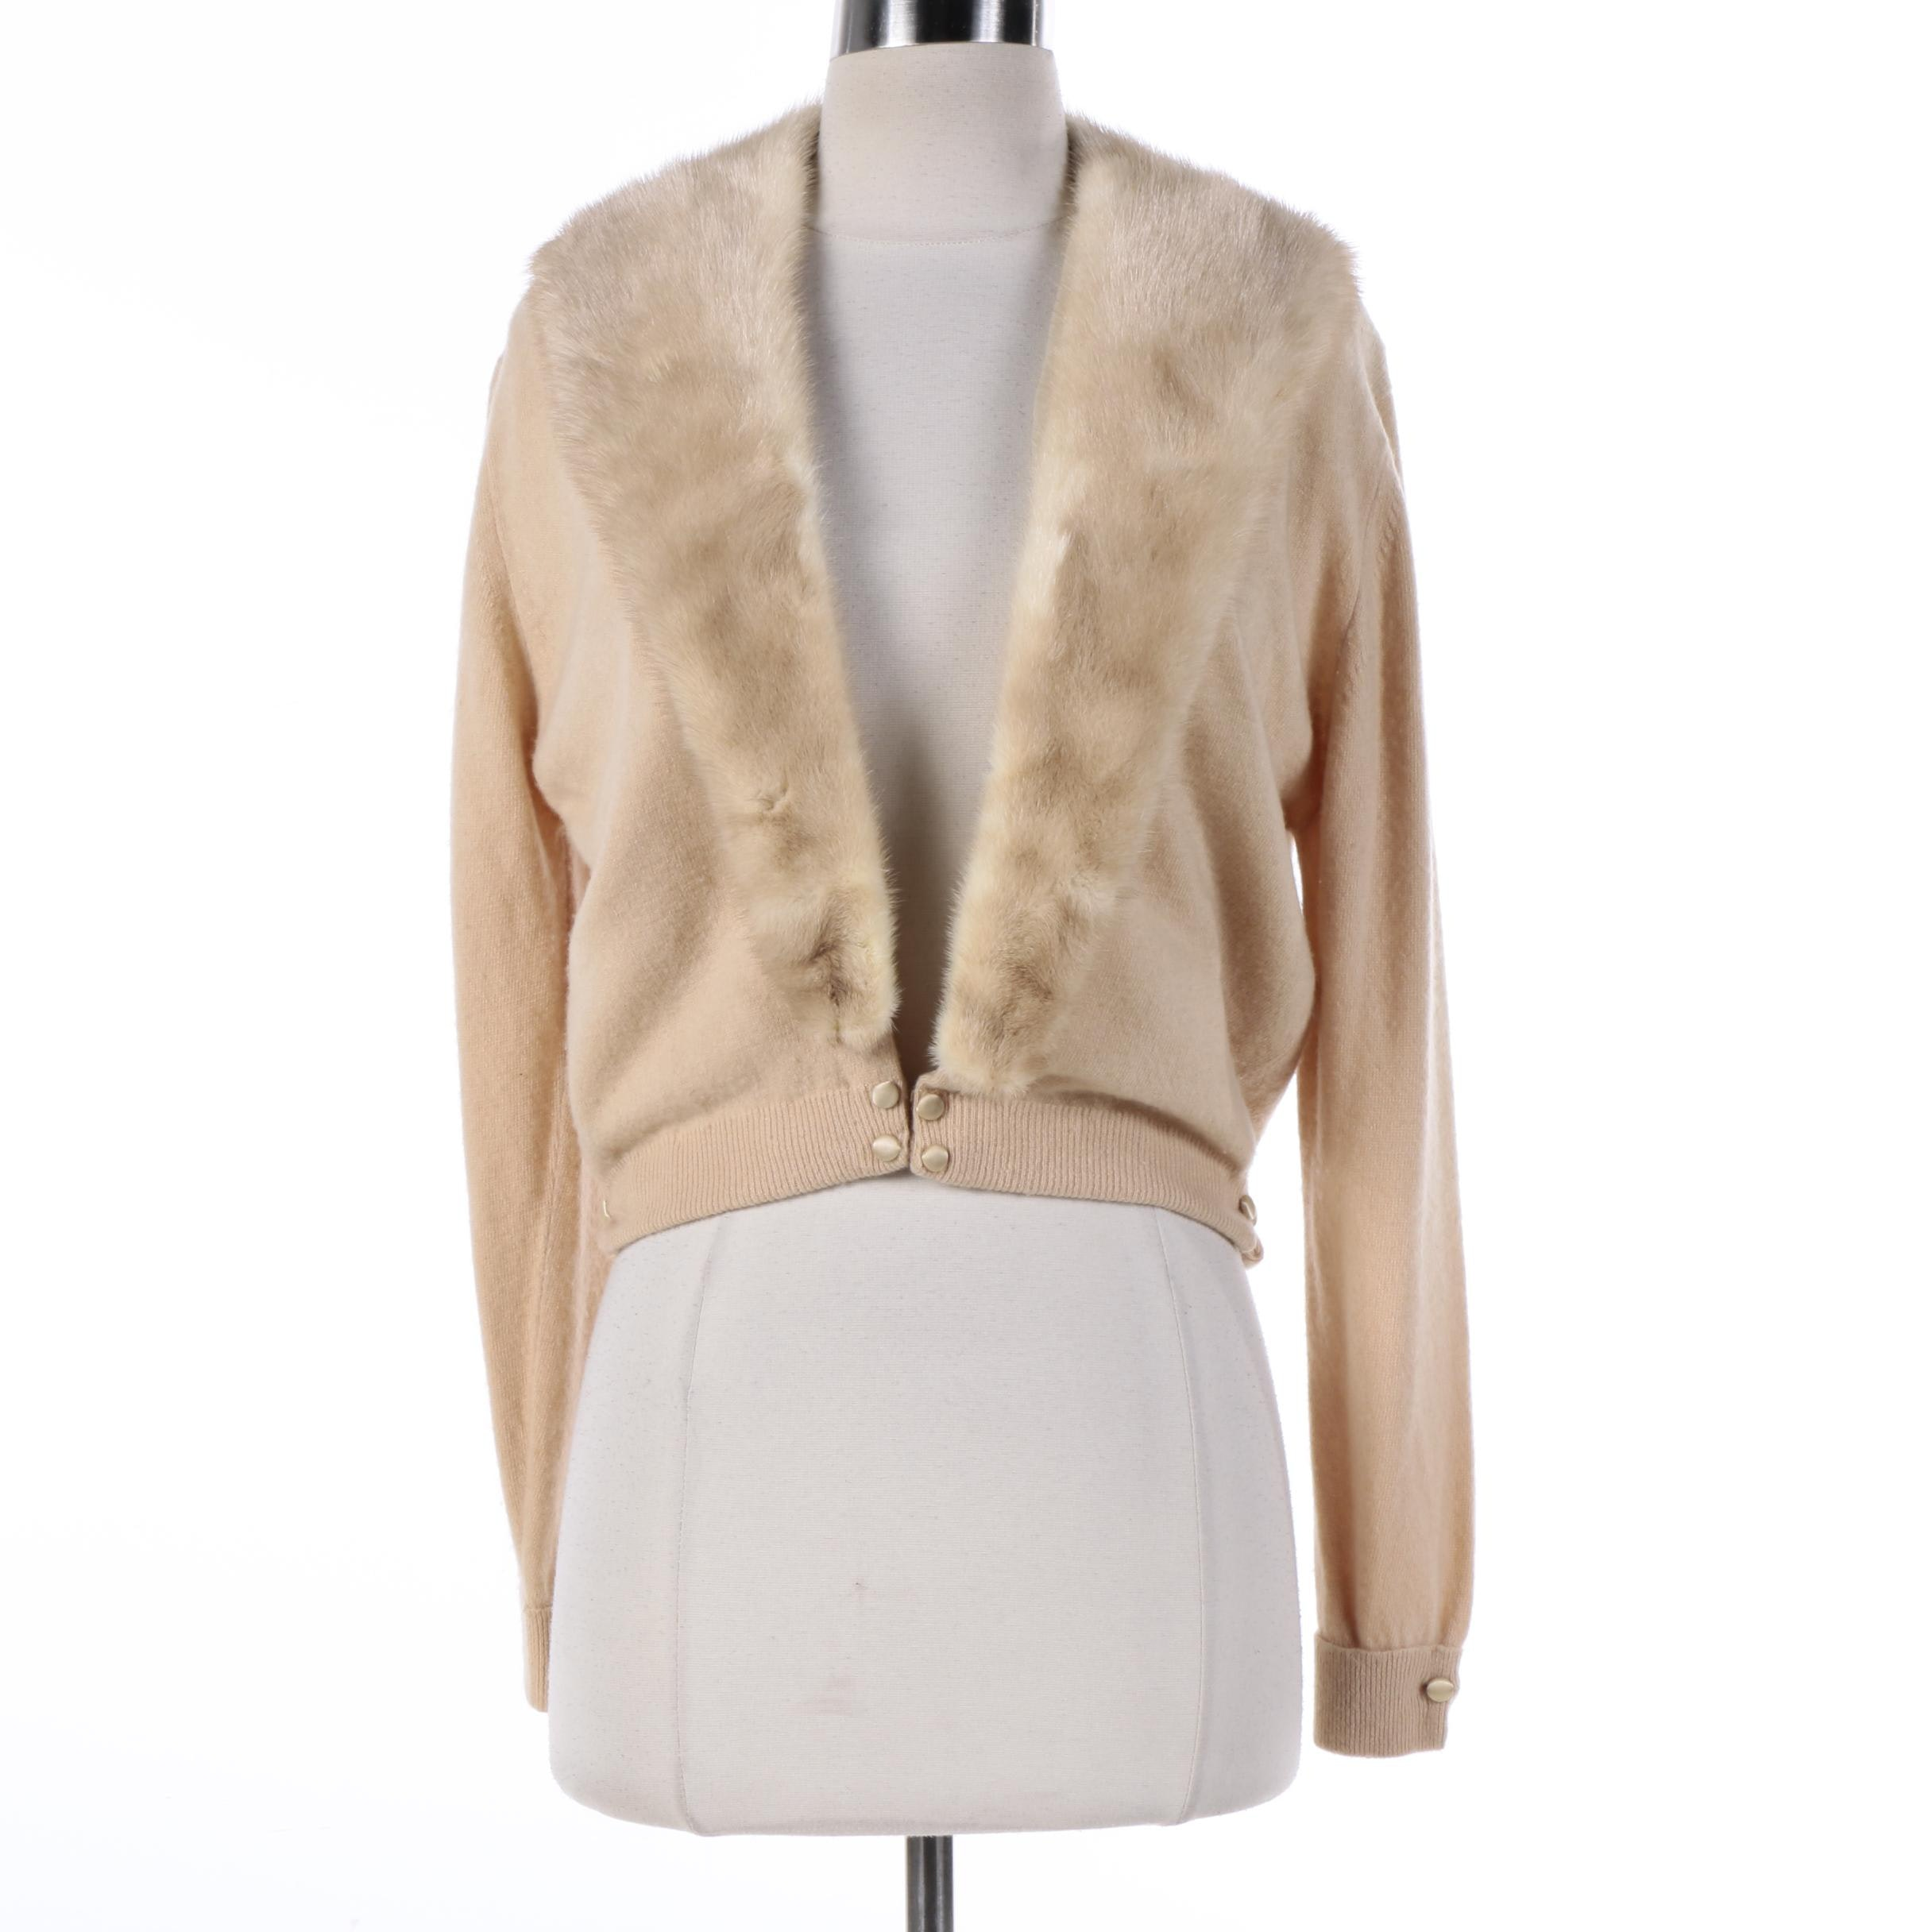 Vintage Beige Cashmere Sweater with Mink Fur Collar